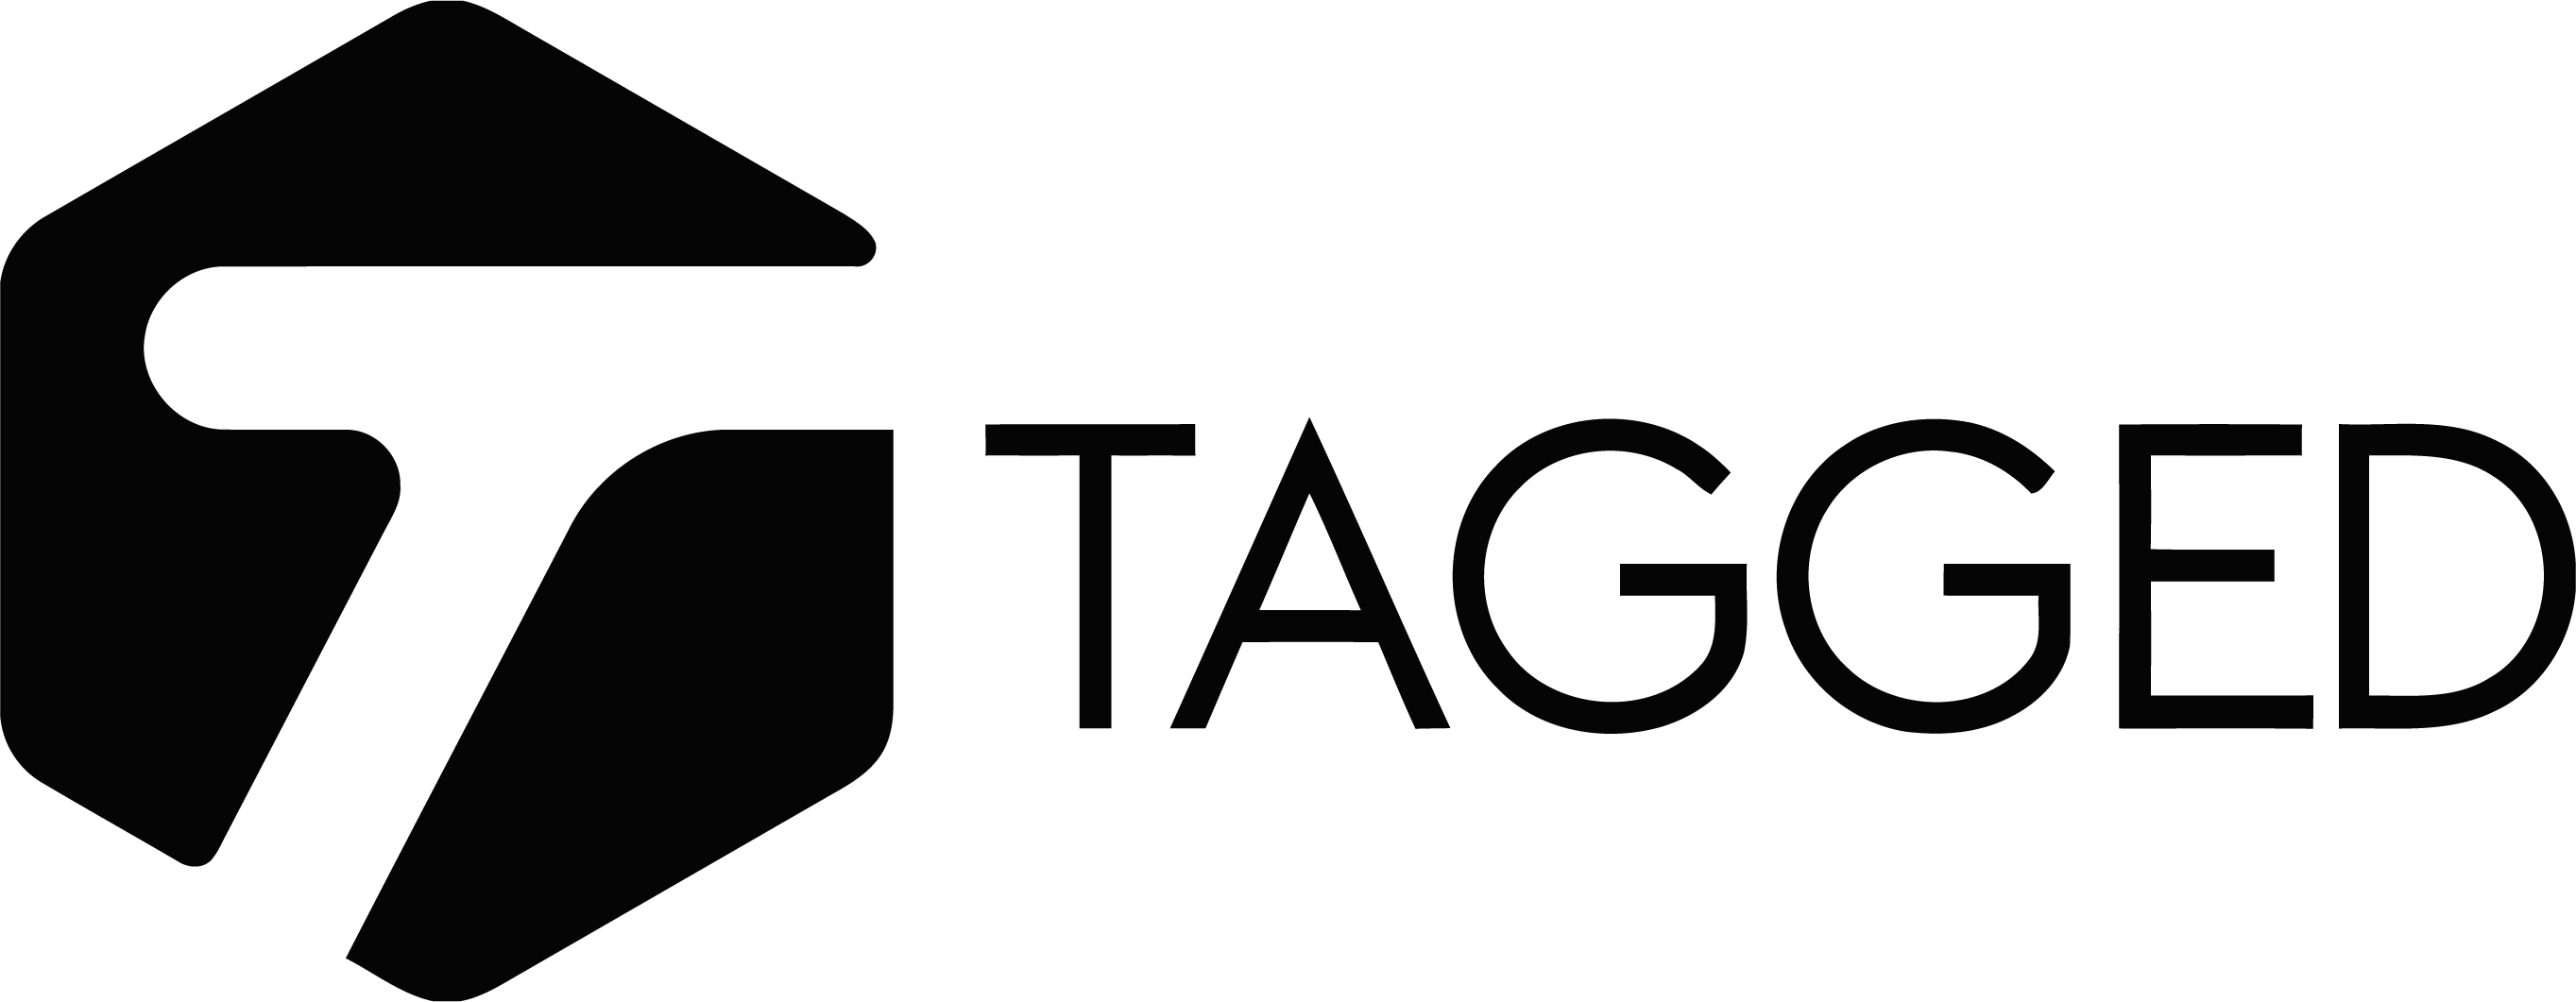 Tagged Logo png